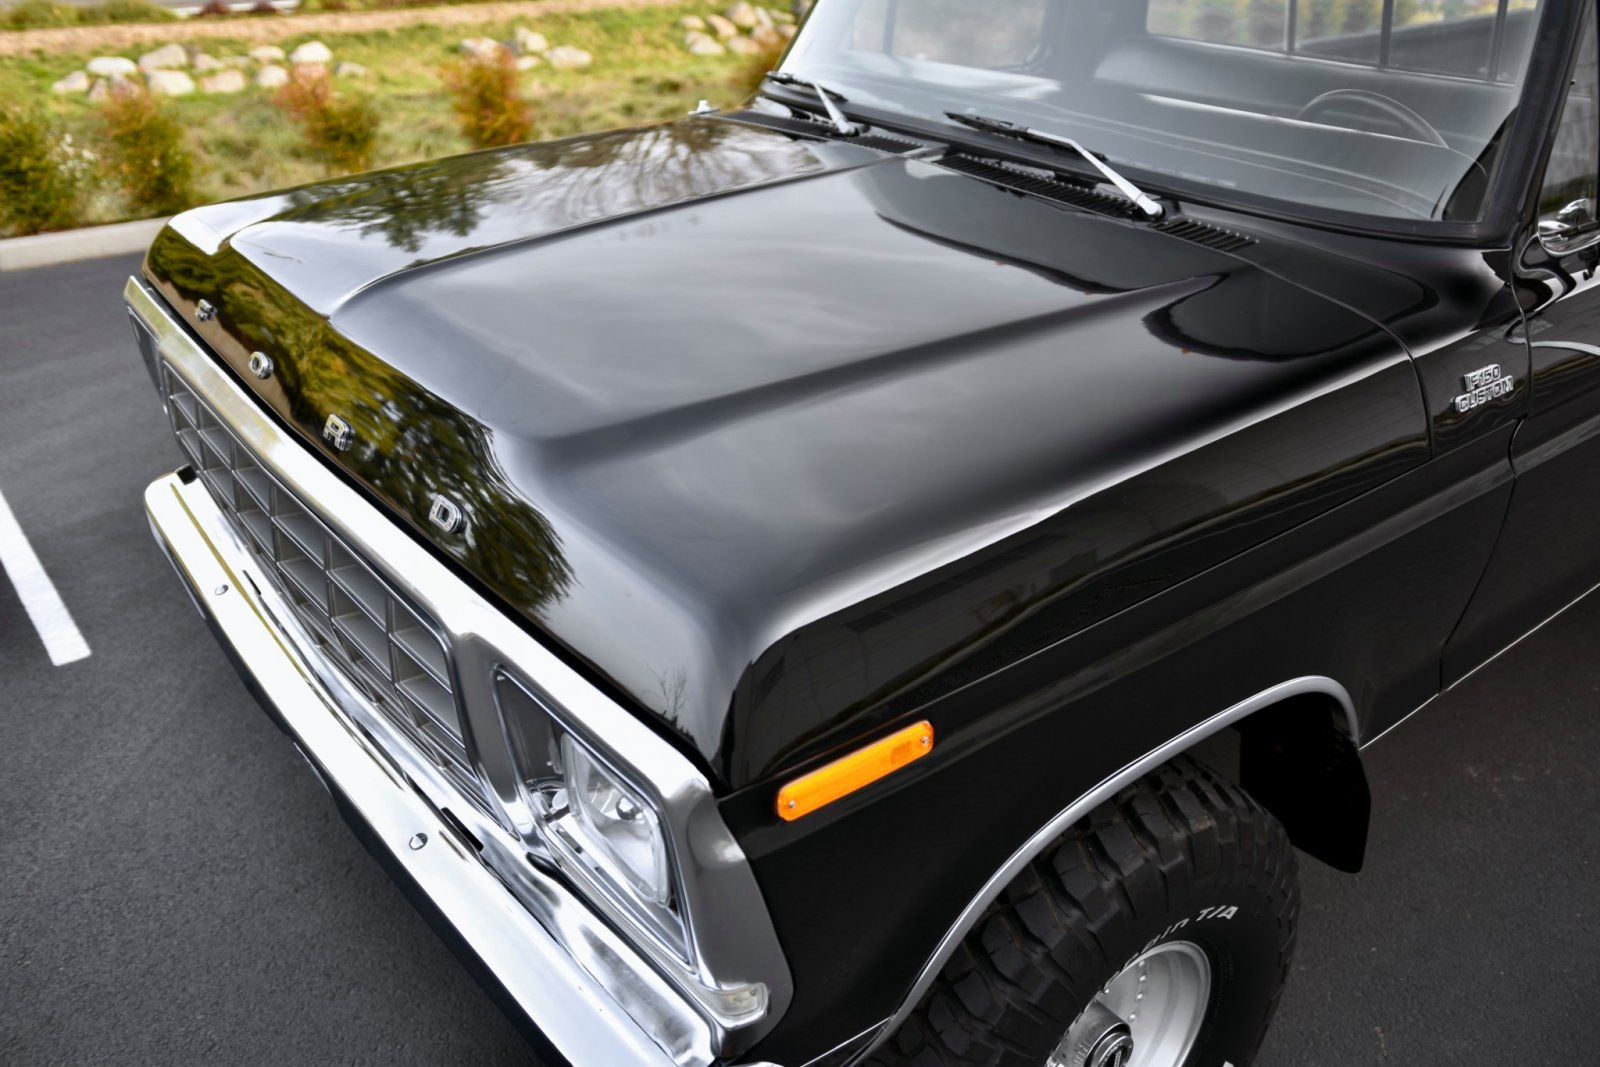 1979_ford_f150_custom_4x4_1573796741208495d5624.jpeg